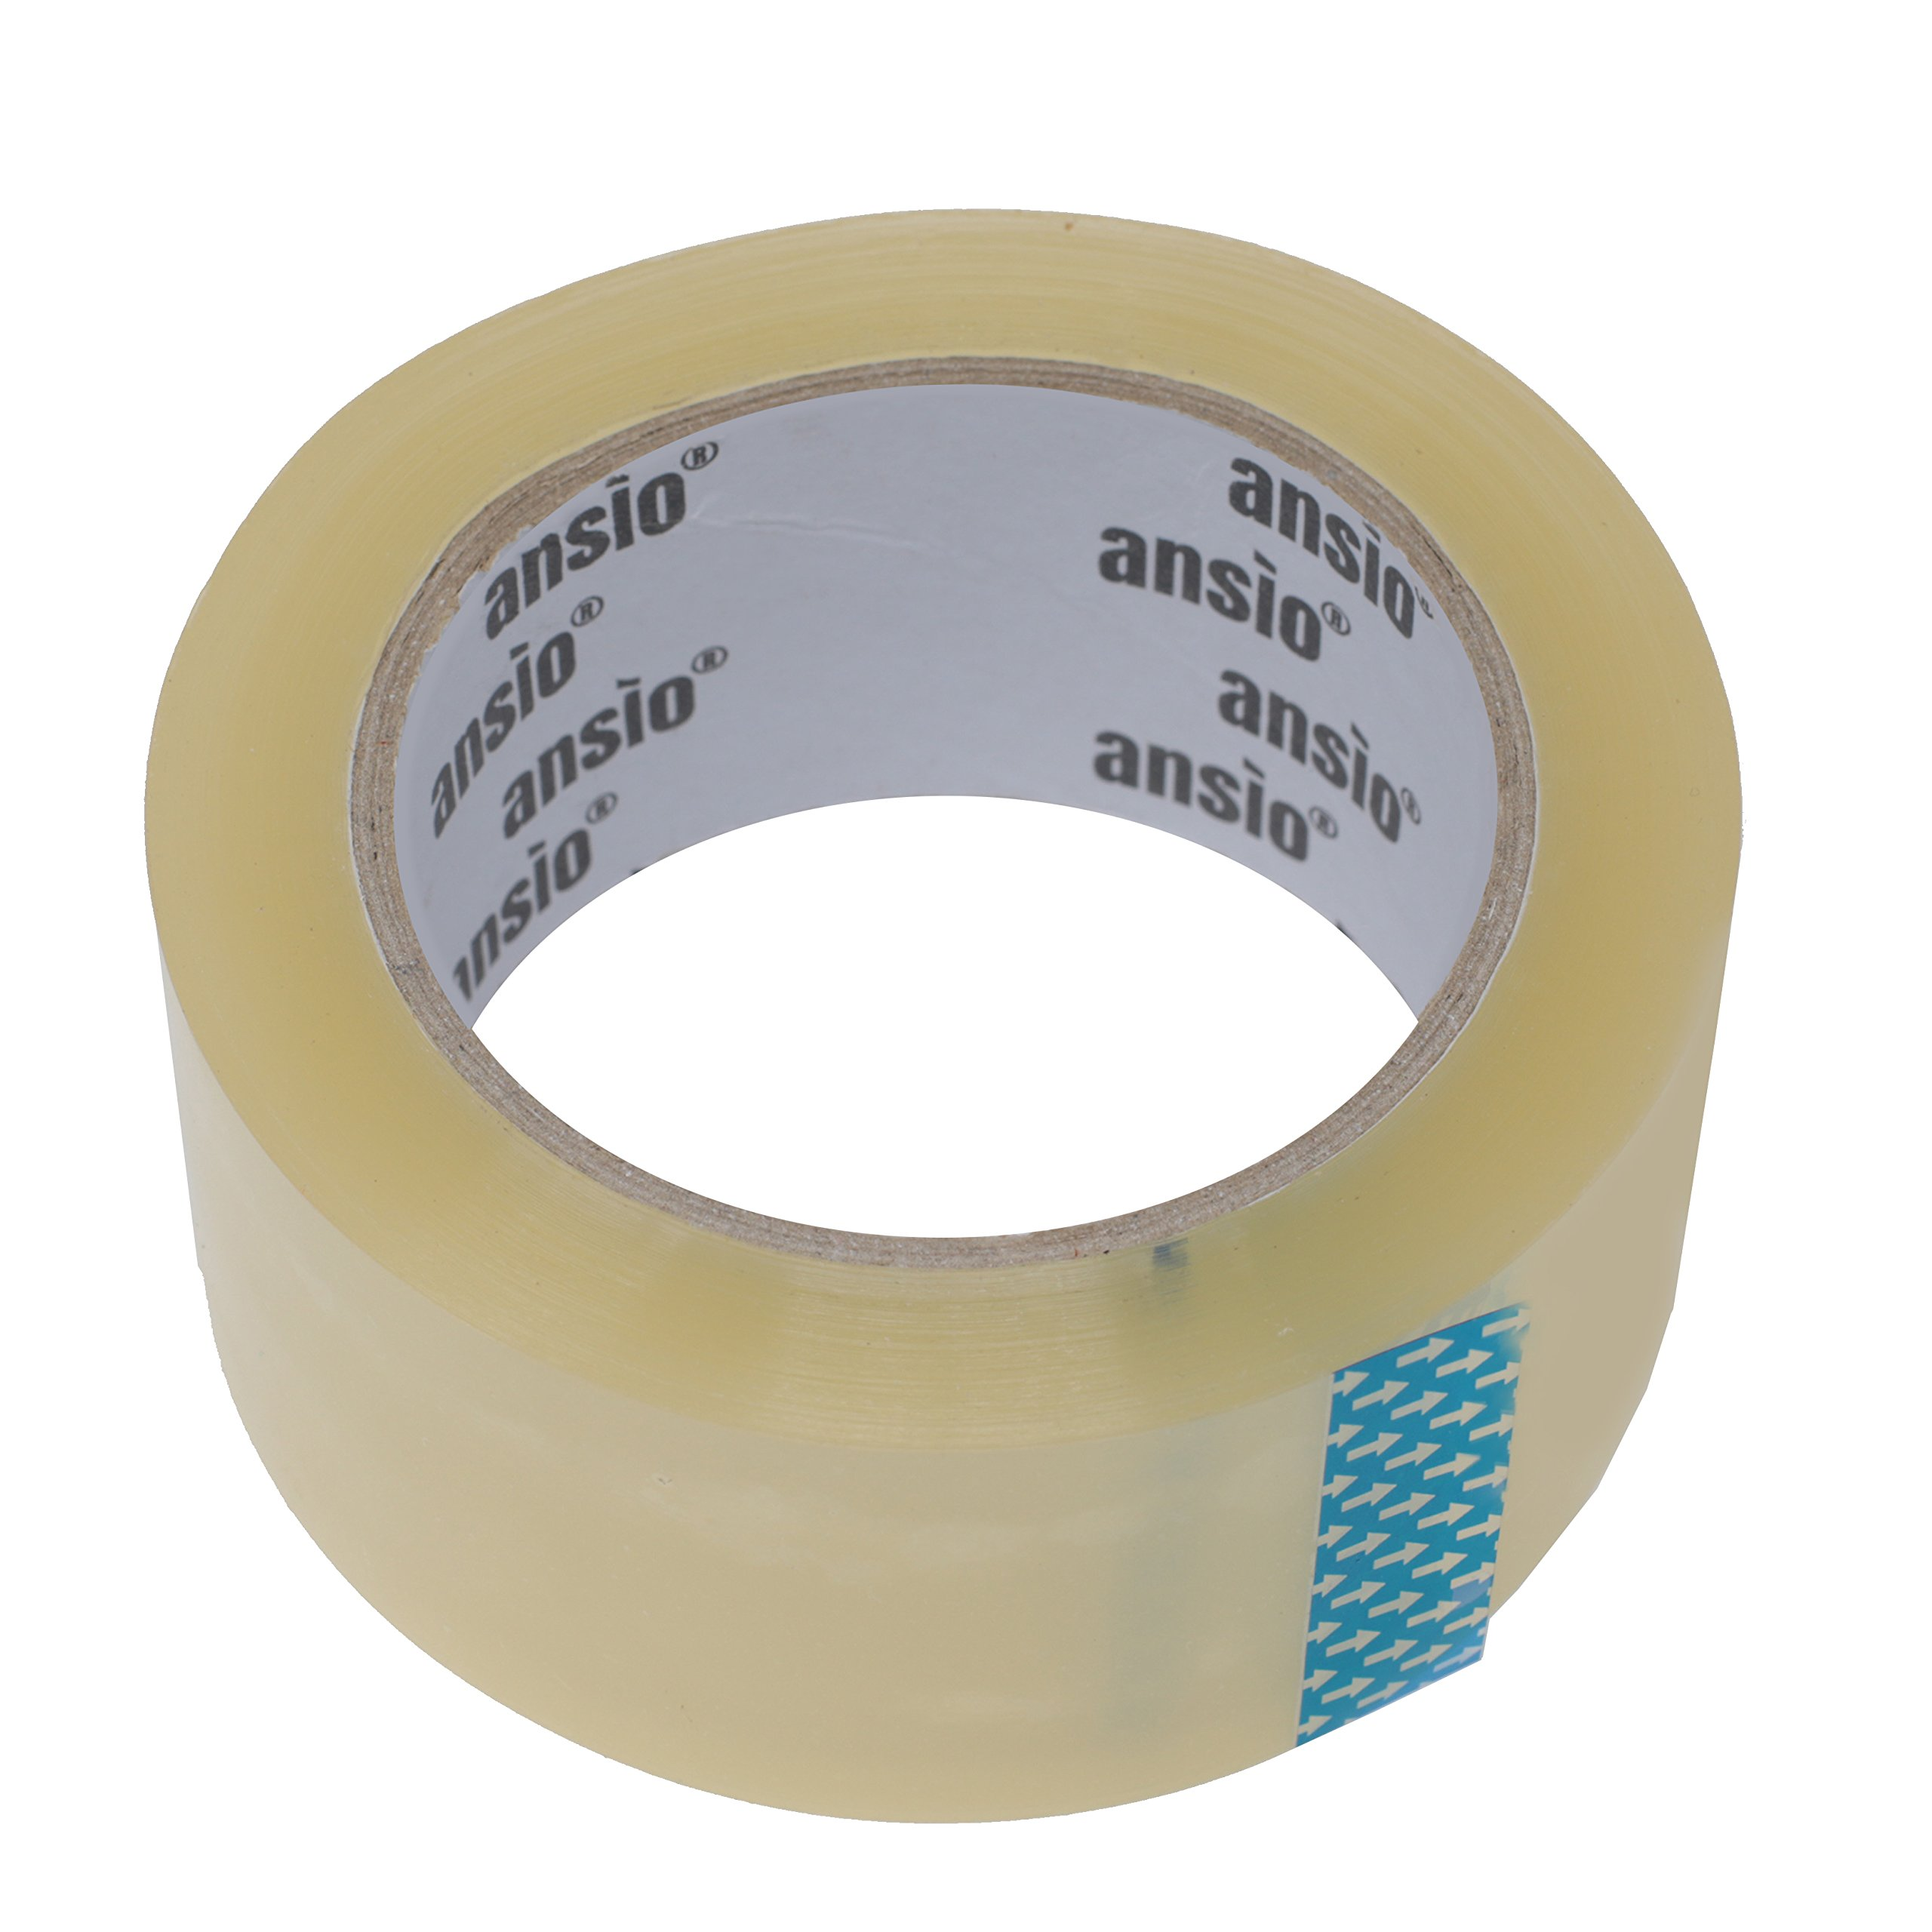 Packing Tape, Shipping Tape, Moving Supplies, Packing Supplies, Packaging Tape, Clear Packing Tape, Box Tape - 2 inches x 66 Yards (50mm x 60m) - 6 Roll Pack by ARVO (Image #2)